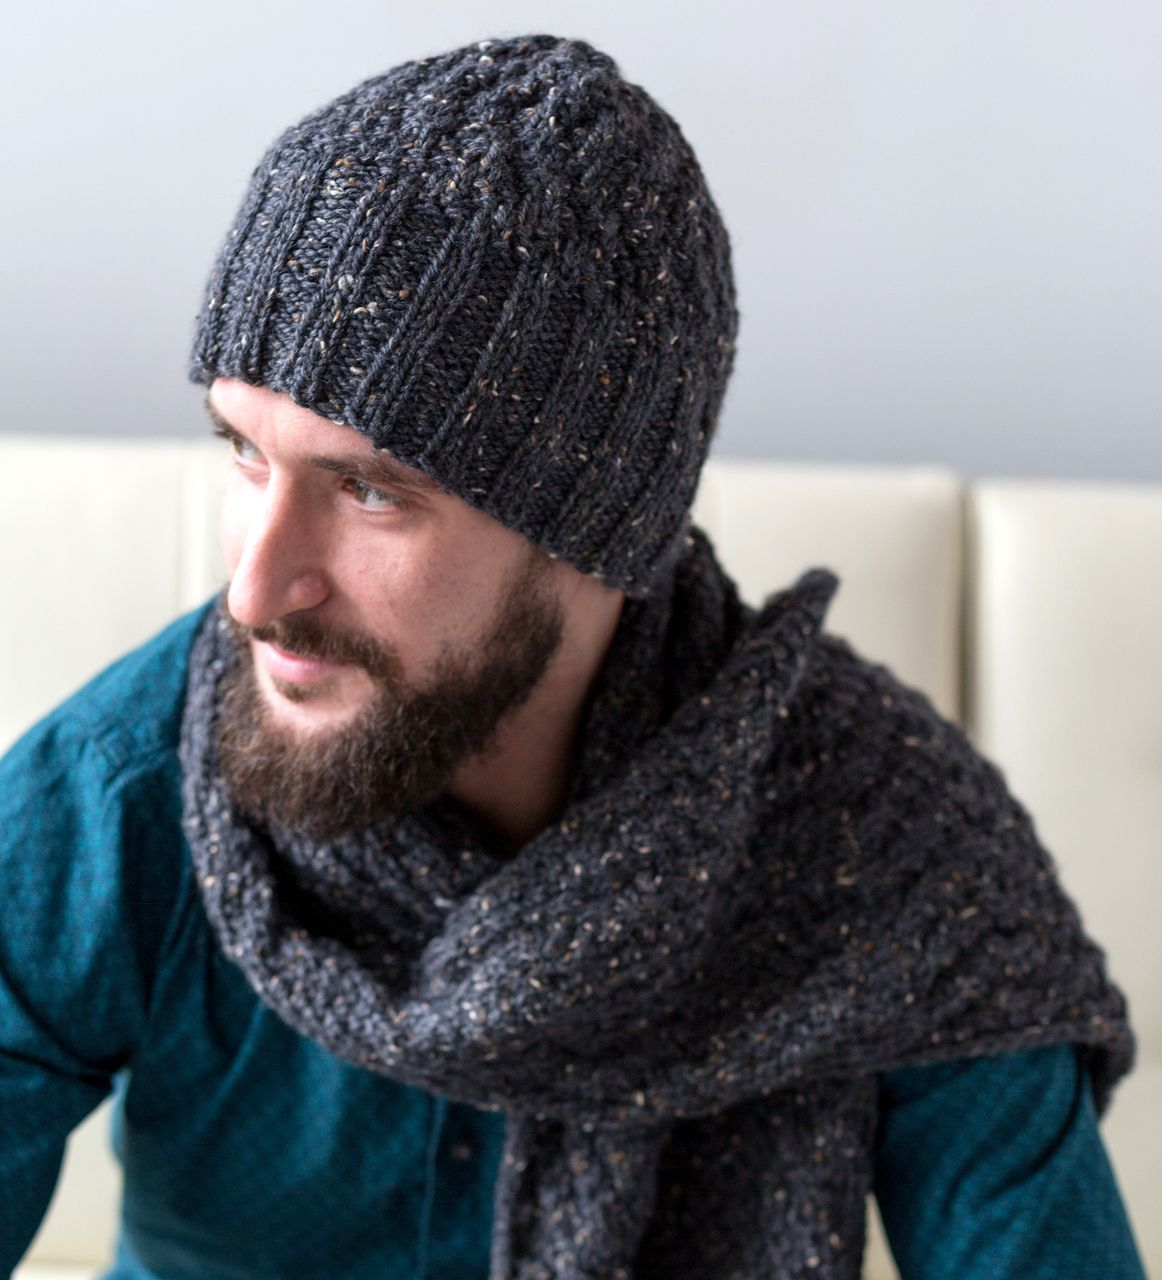 Mens Cable Hat and Scarf - http://www.knittingboard.com ...